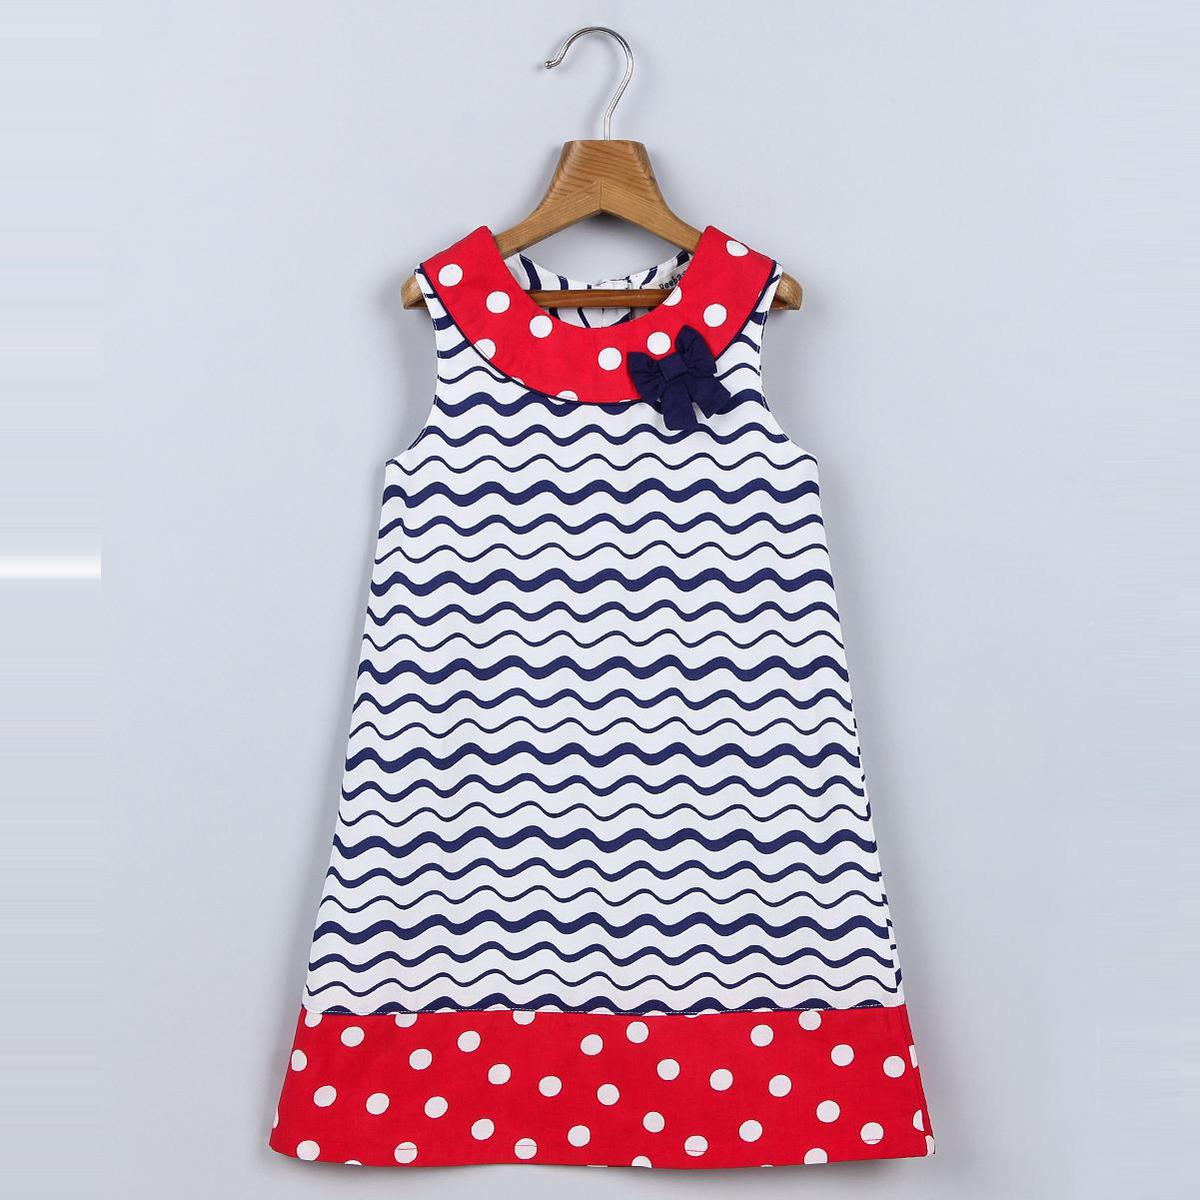 Beebay - Red Colored A-Line Polka Dot Bow Cotton Dress For Girls